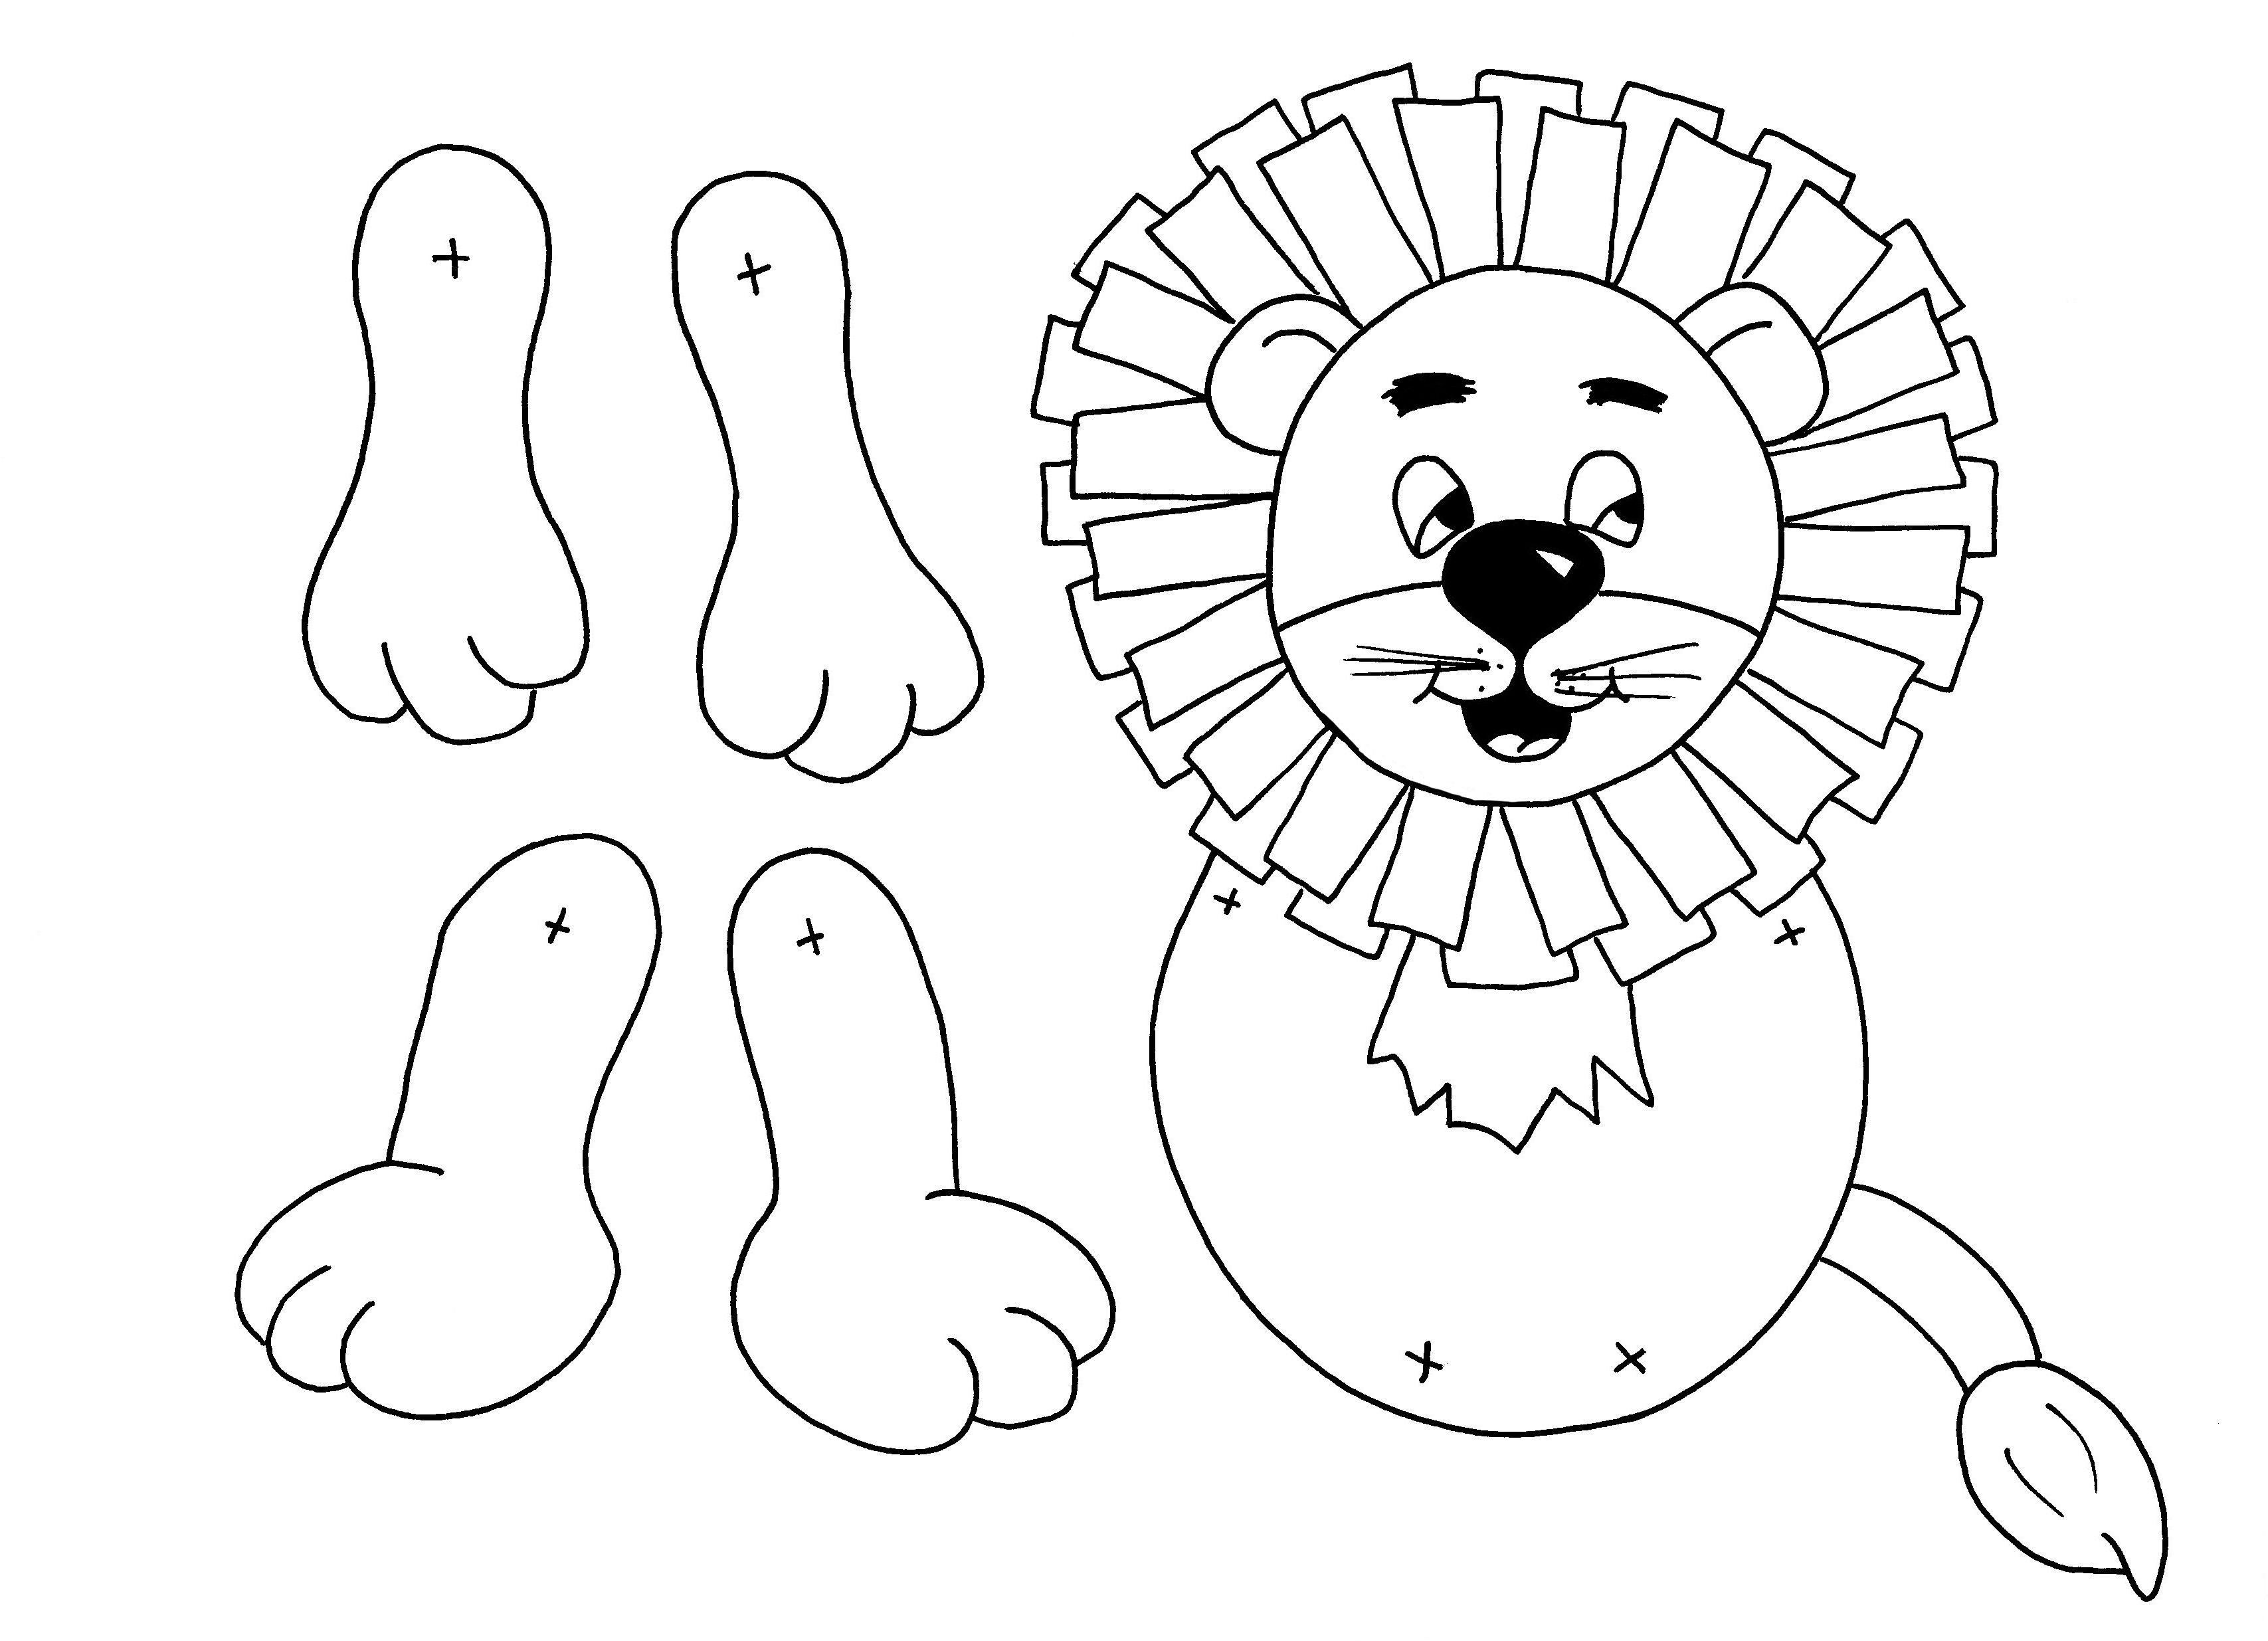 Lion template download pdf puppet school pinterest for Paper finger puppets templates